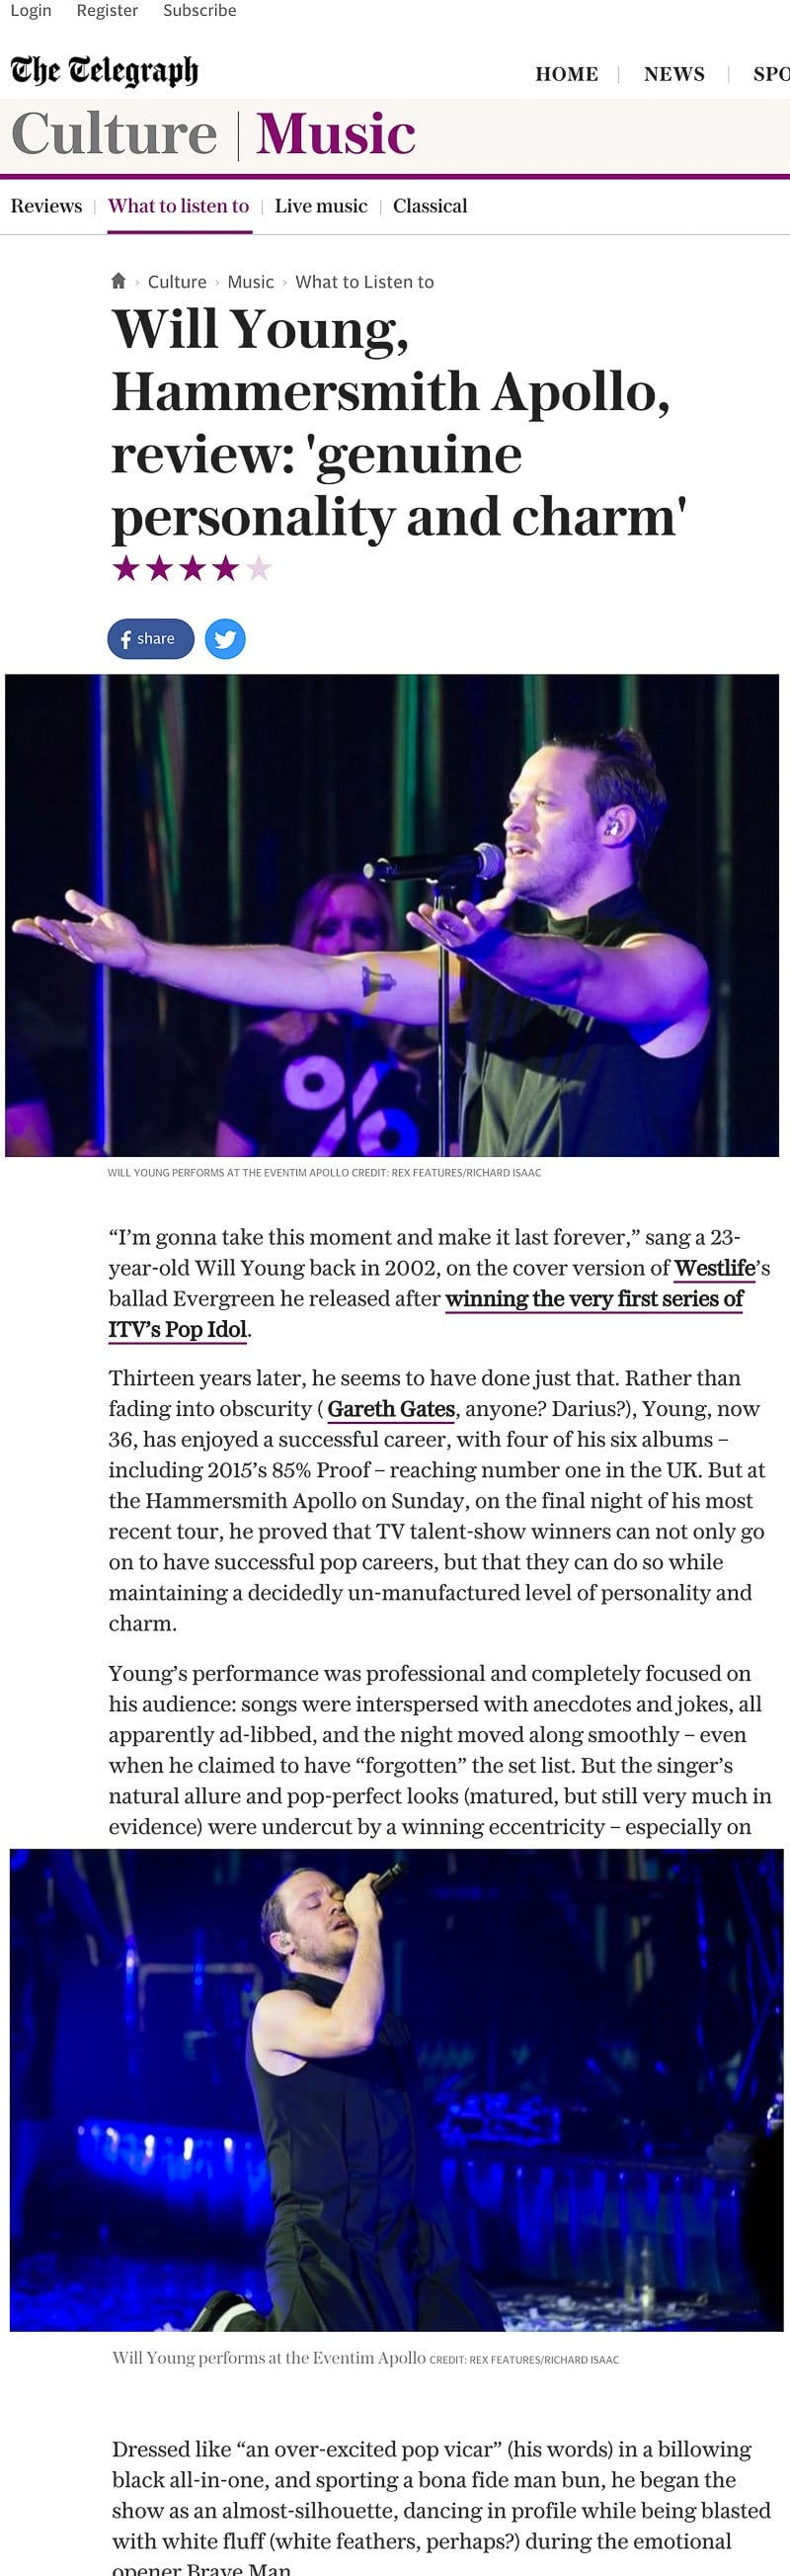 Image usage - Daily Telegraph online 30 November 2015 - Will Young live at Eventim Apollo 29 November 2015